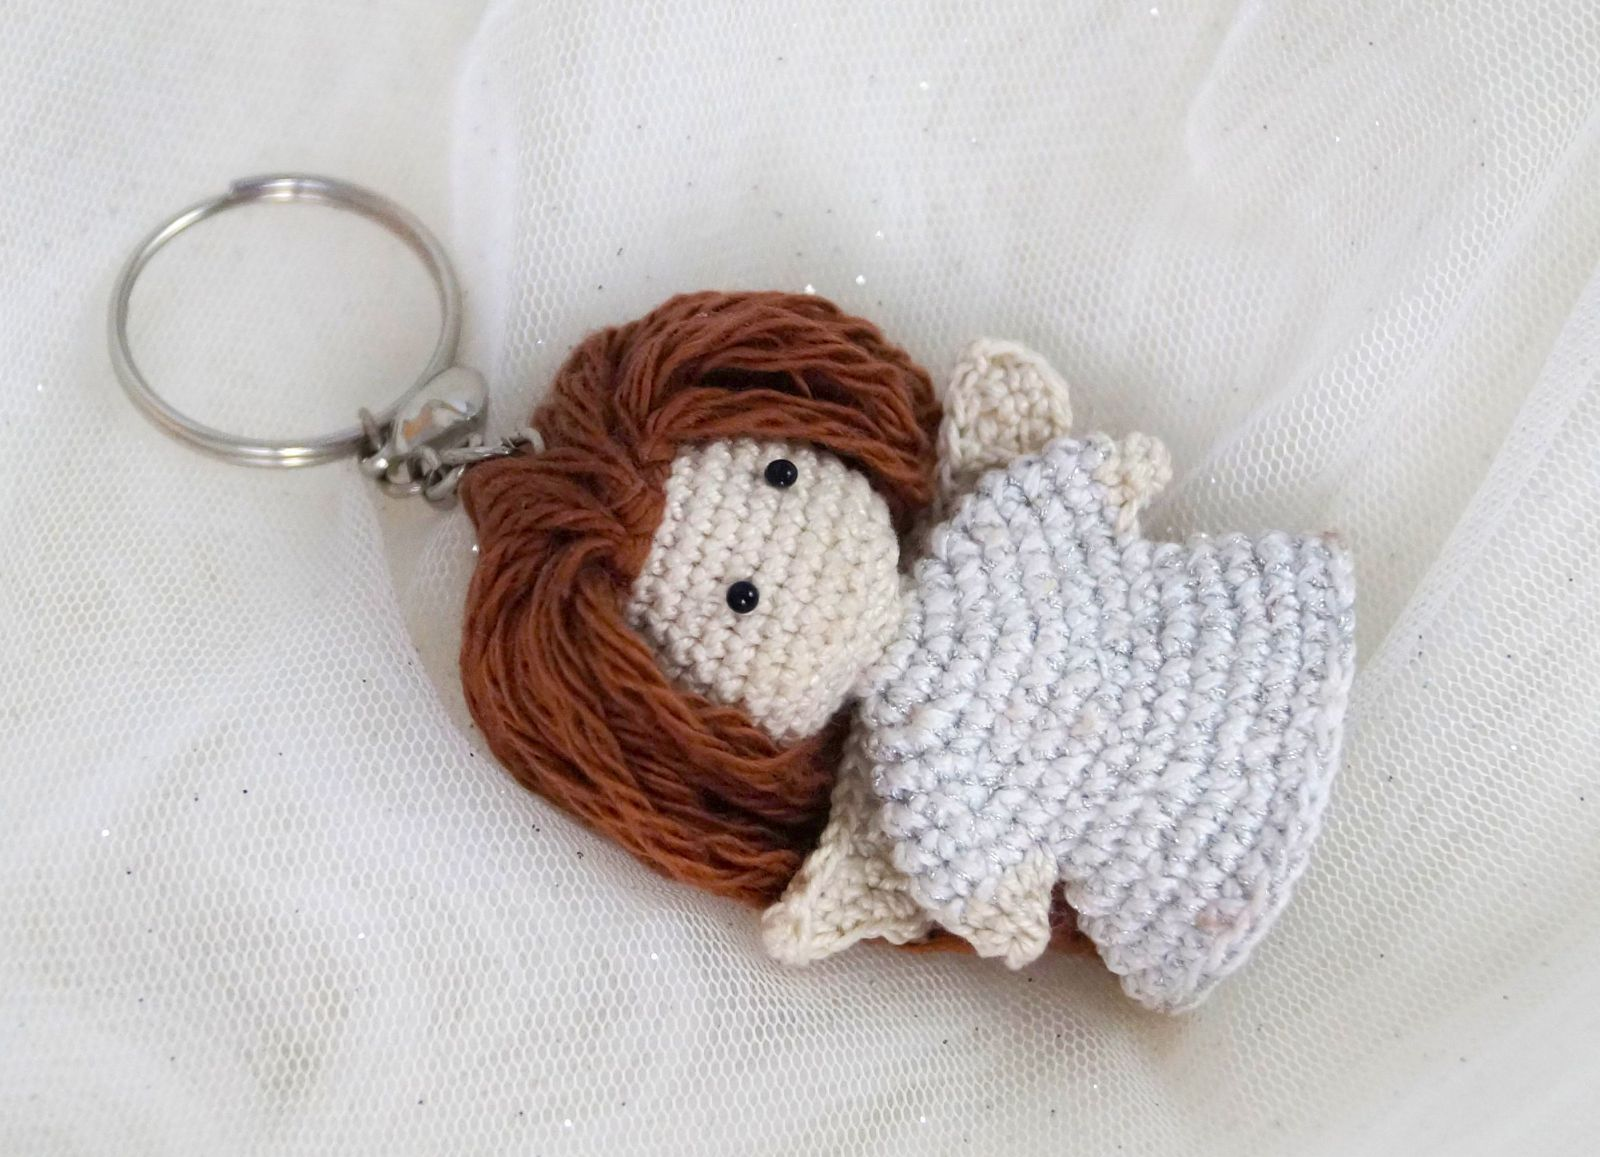 Crochet Angel Free Patterns & Tutorials | Crochet dolls free ... | 1157x1600